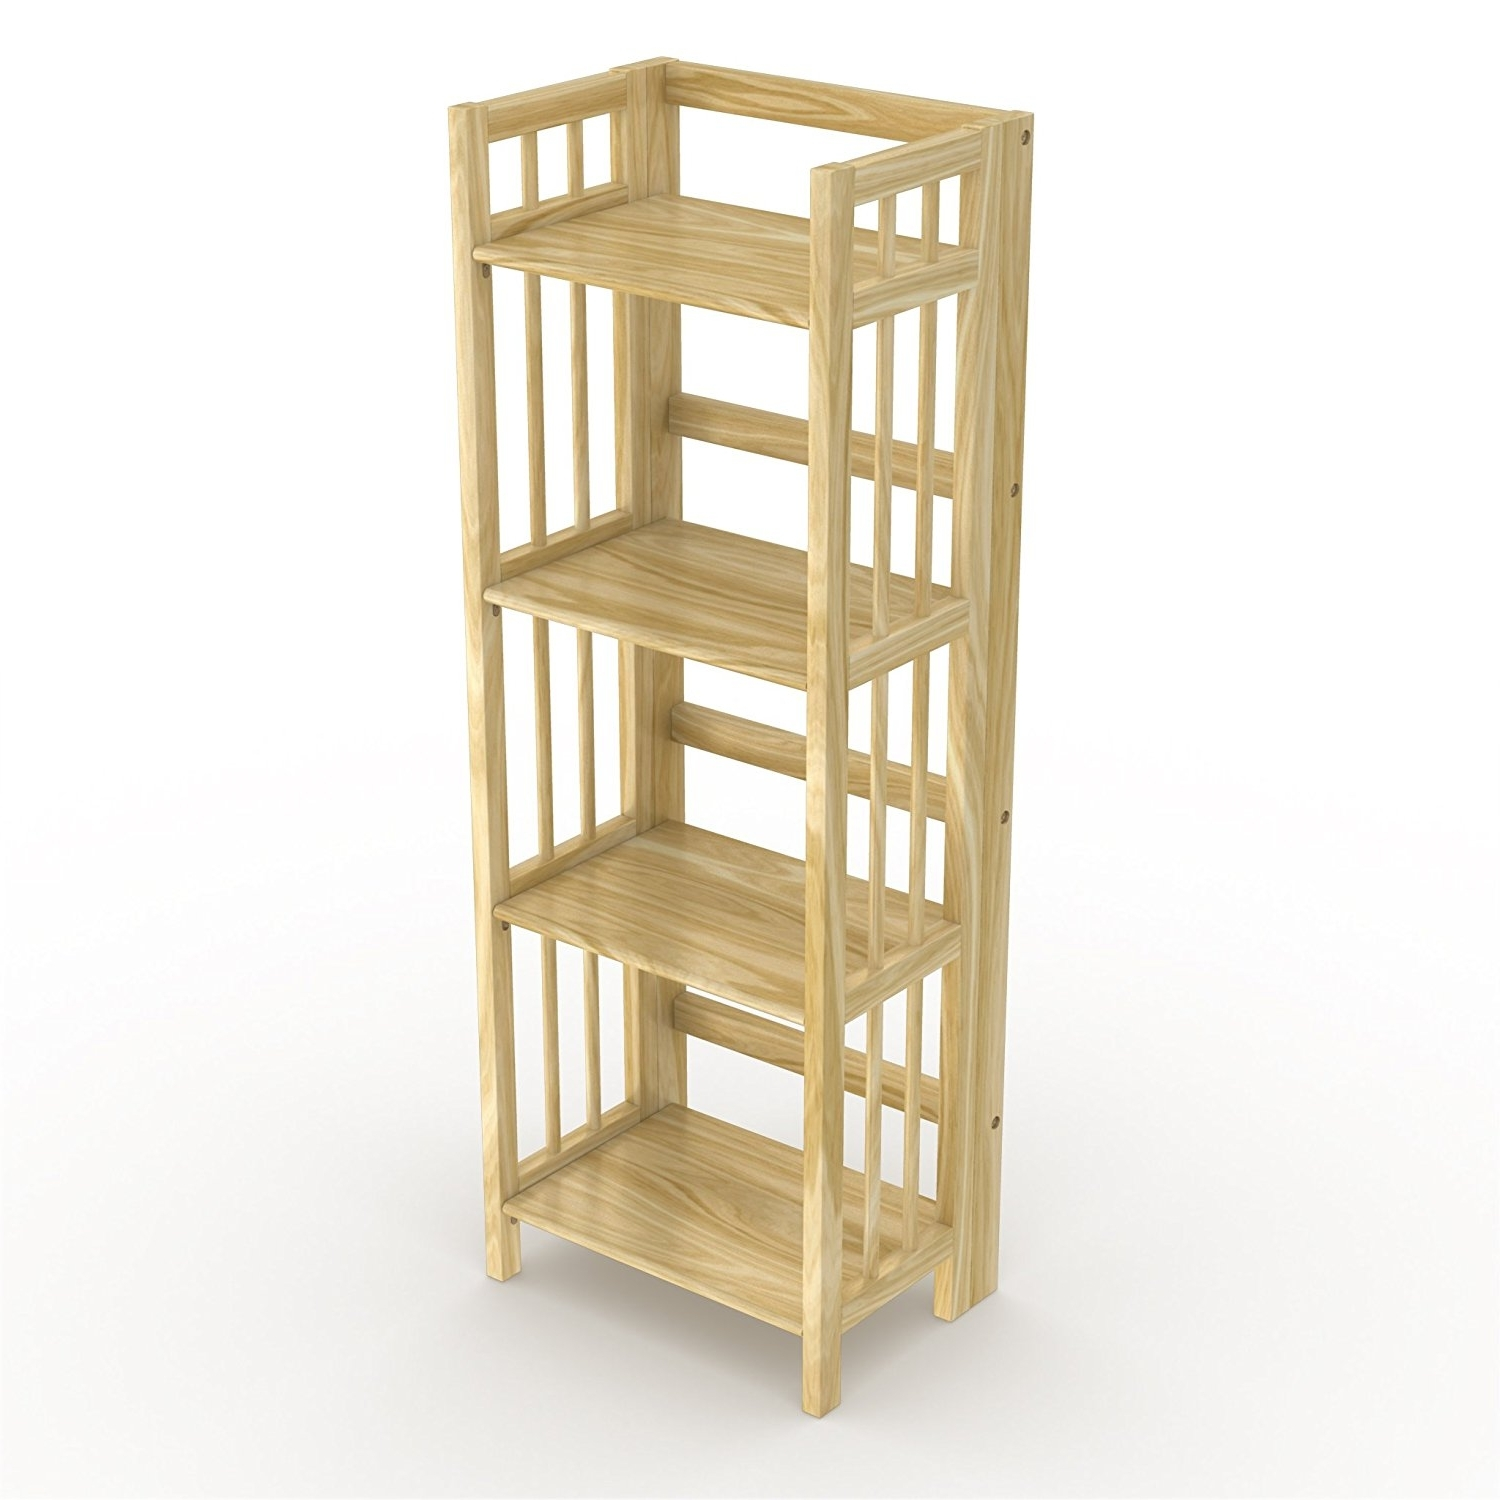 Well Liked Amazon: Stony Edge Fbc 16 Na No Assembly Folding Bookcase Intended For Folding Bookcases (View 9 of 15)